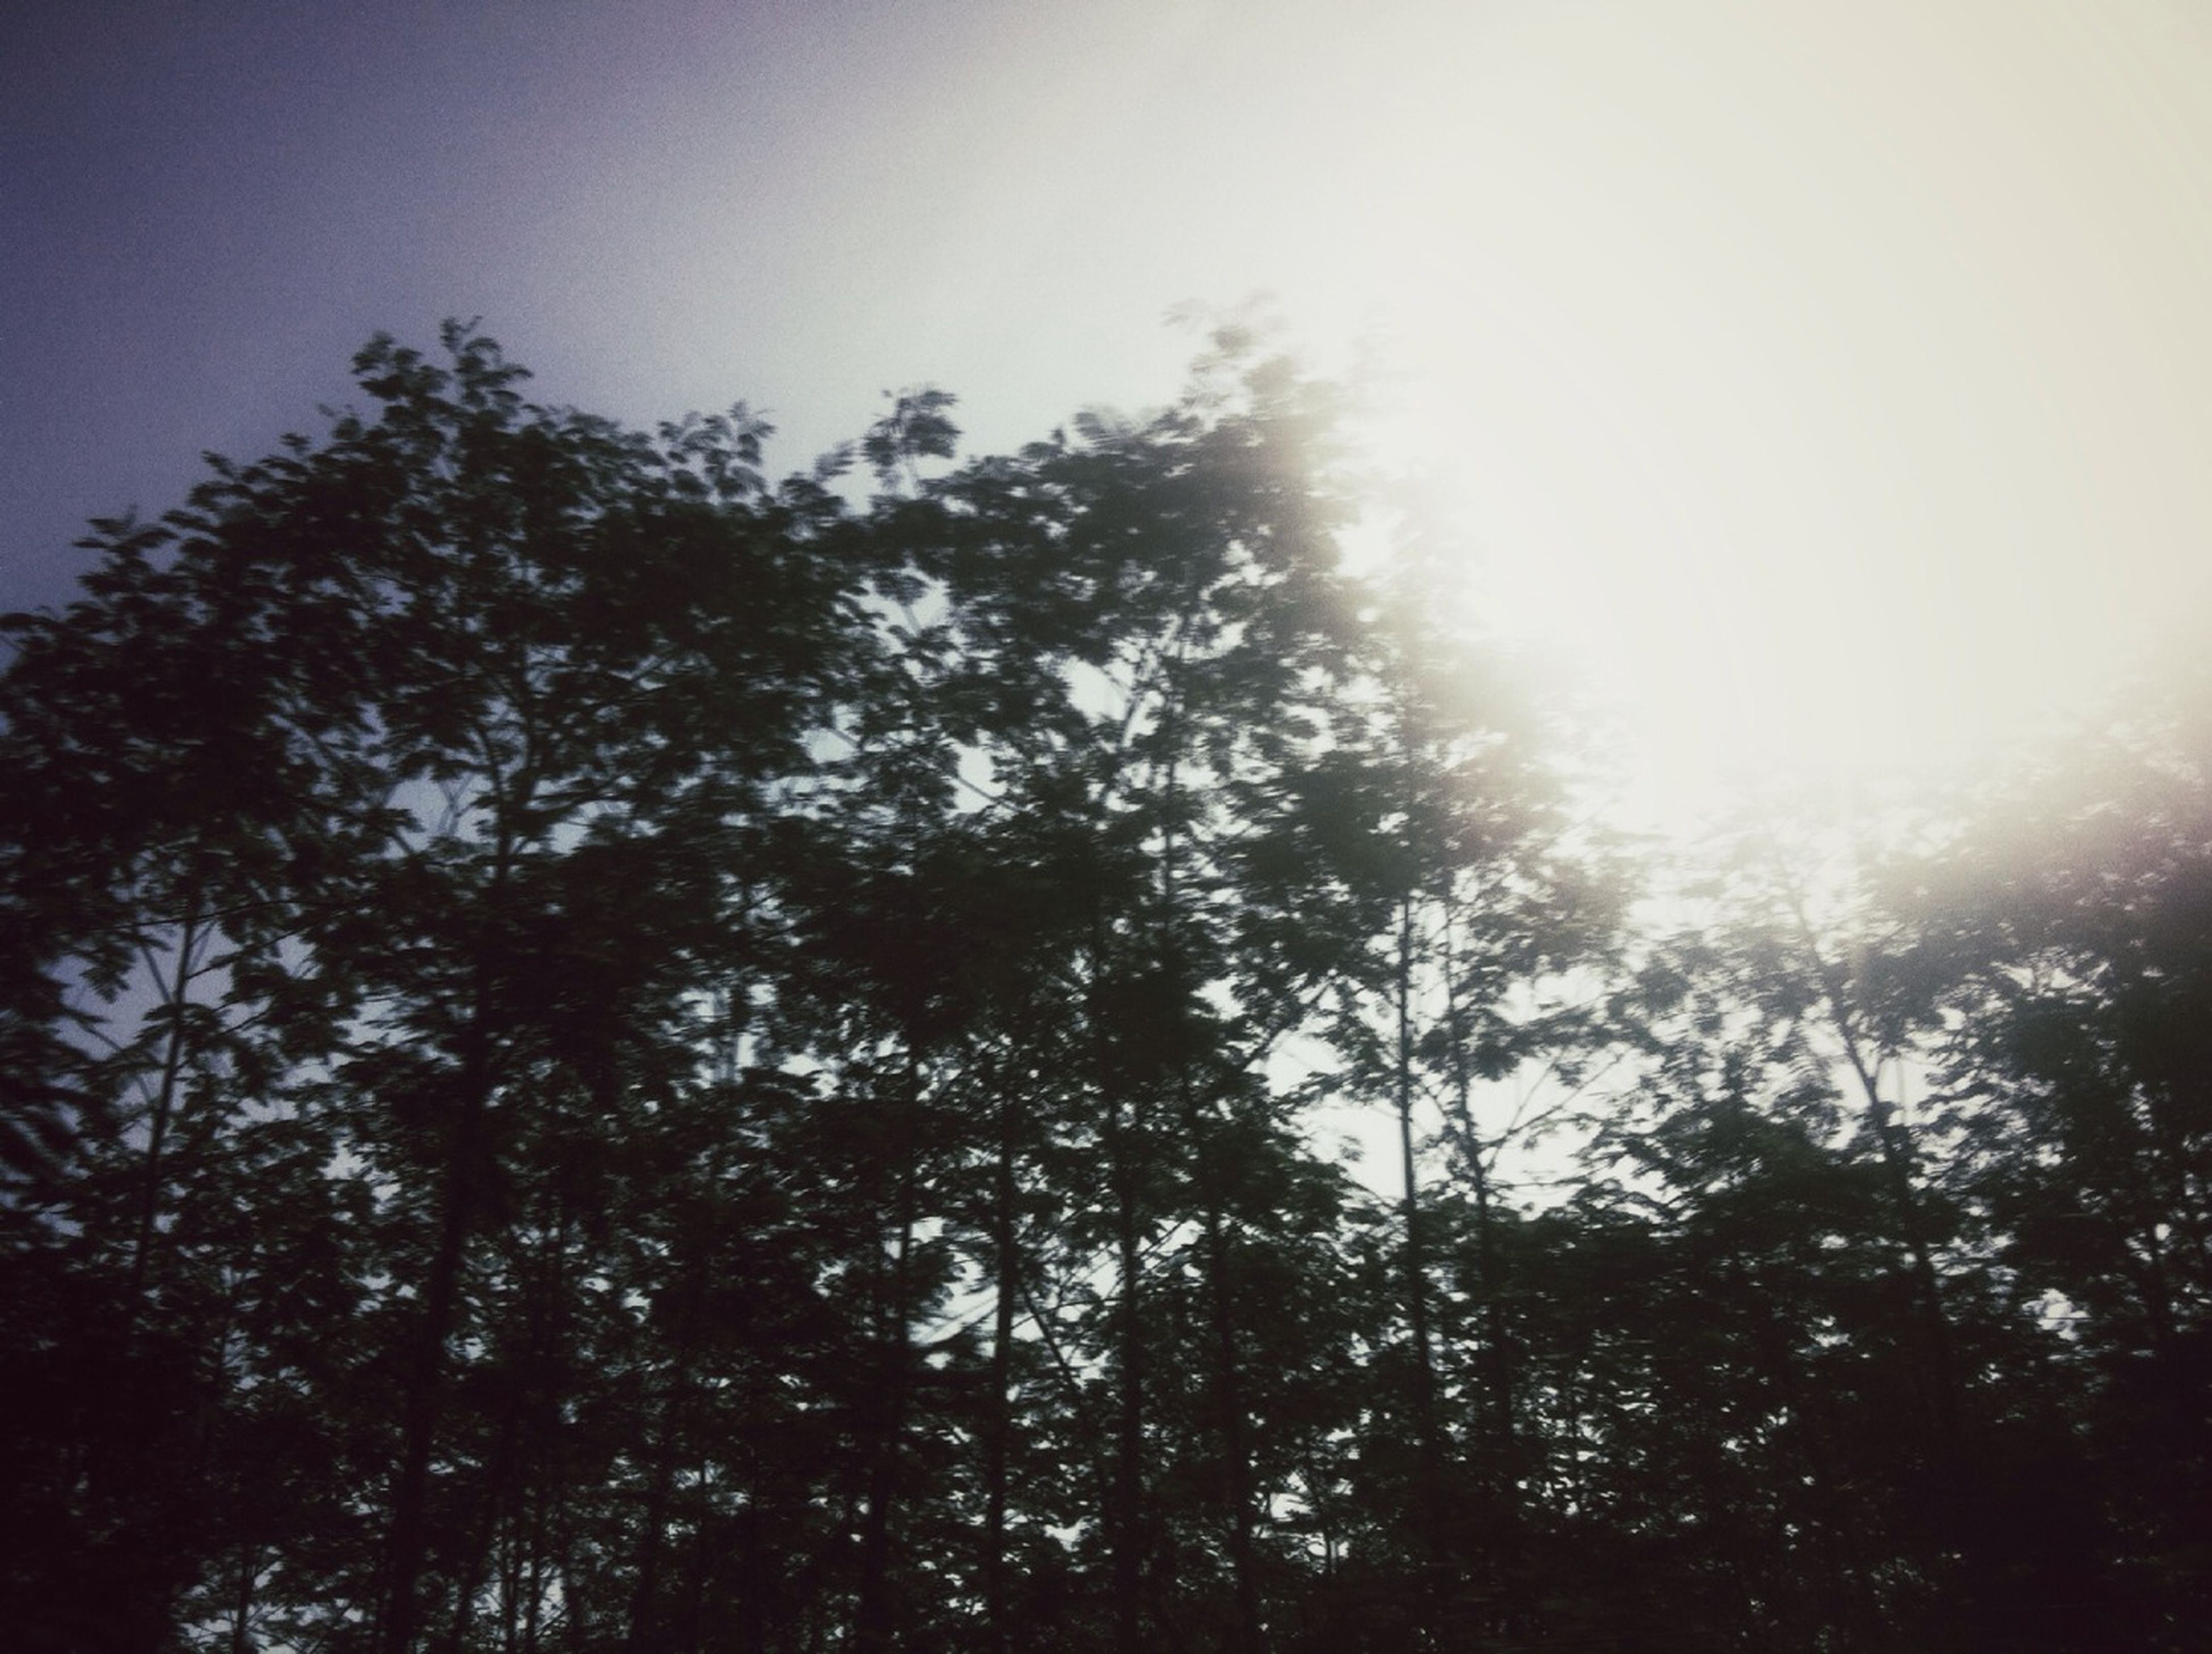 tree, low angle view, sun, tranquility, growth, beauty in nature, nature, sunbeam, sunlight, sky, tranquil scene, silhouette, scenics, clear sky, lens flare, forest, branch, outdoors, day, no people